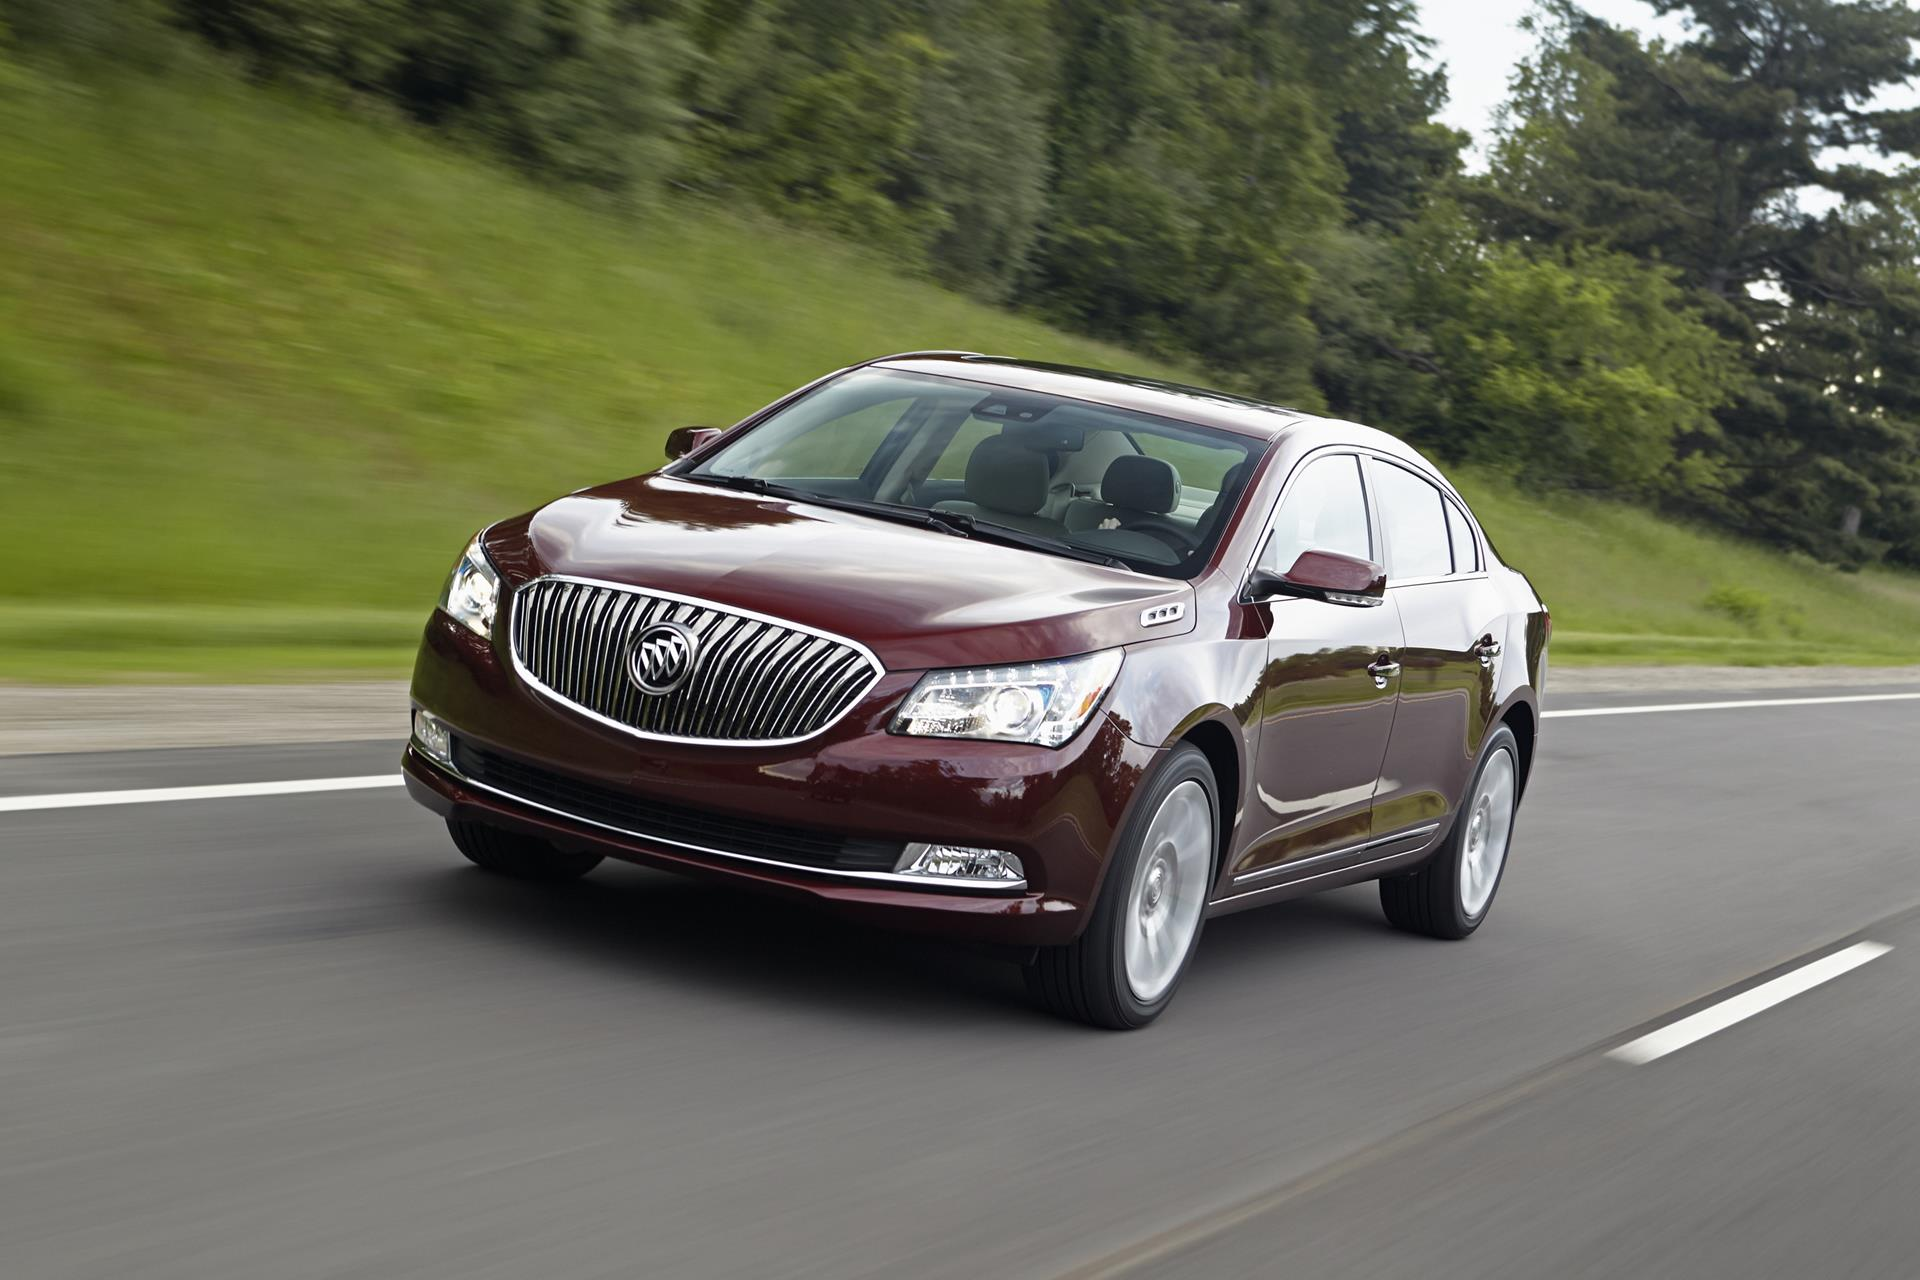 2016 Buick LaCrosse News and Information | conceptcarz.com